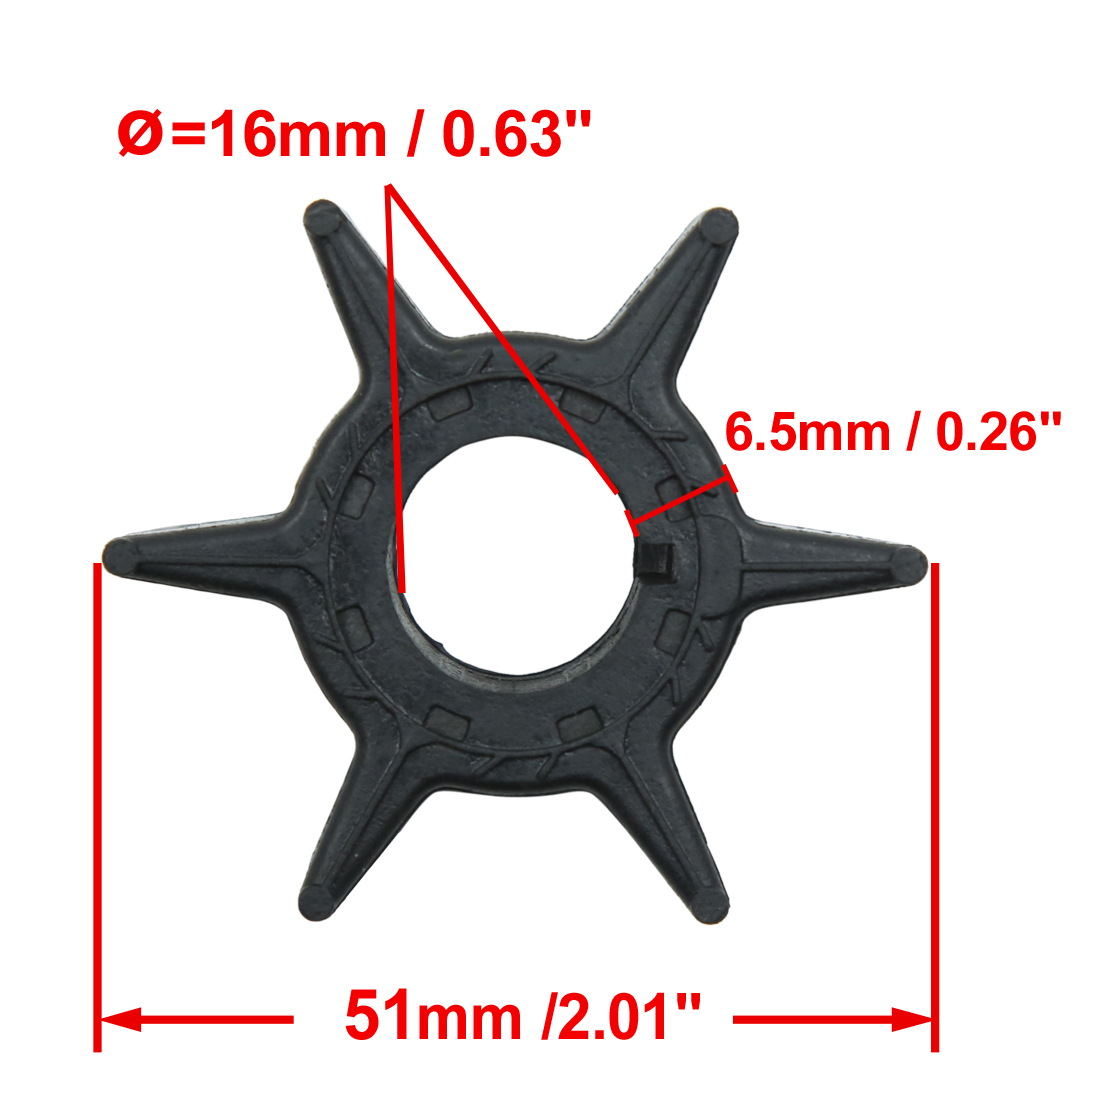 Boat Outboard Water Pump Impeller Replacement for Yamaha 60hp 6H4-44352-00-00 - image 3 de 5